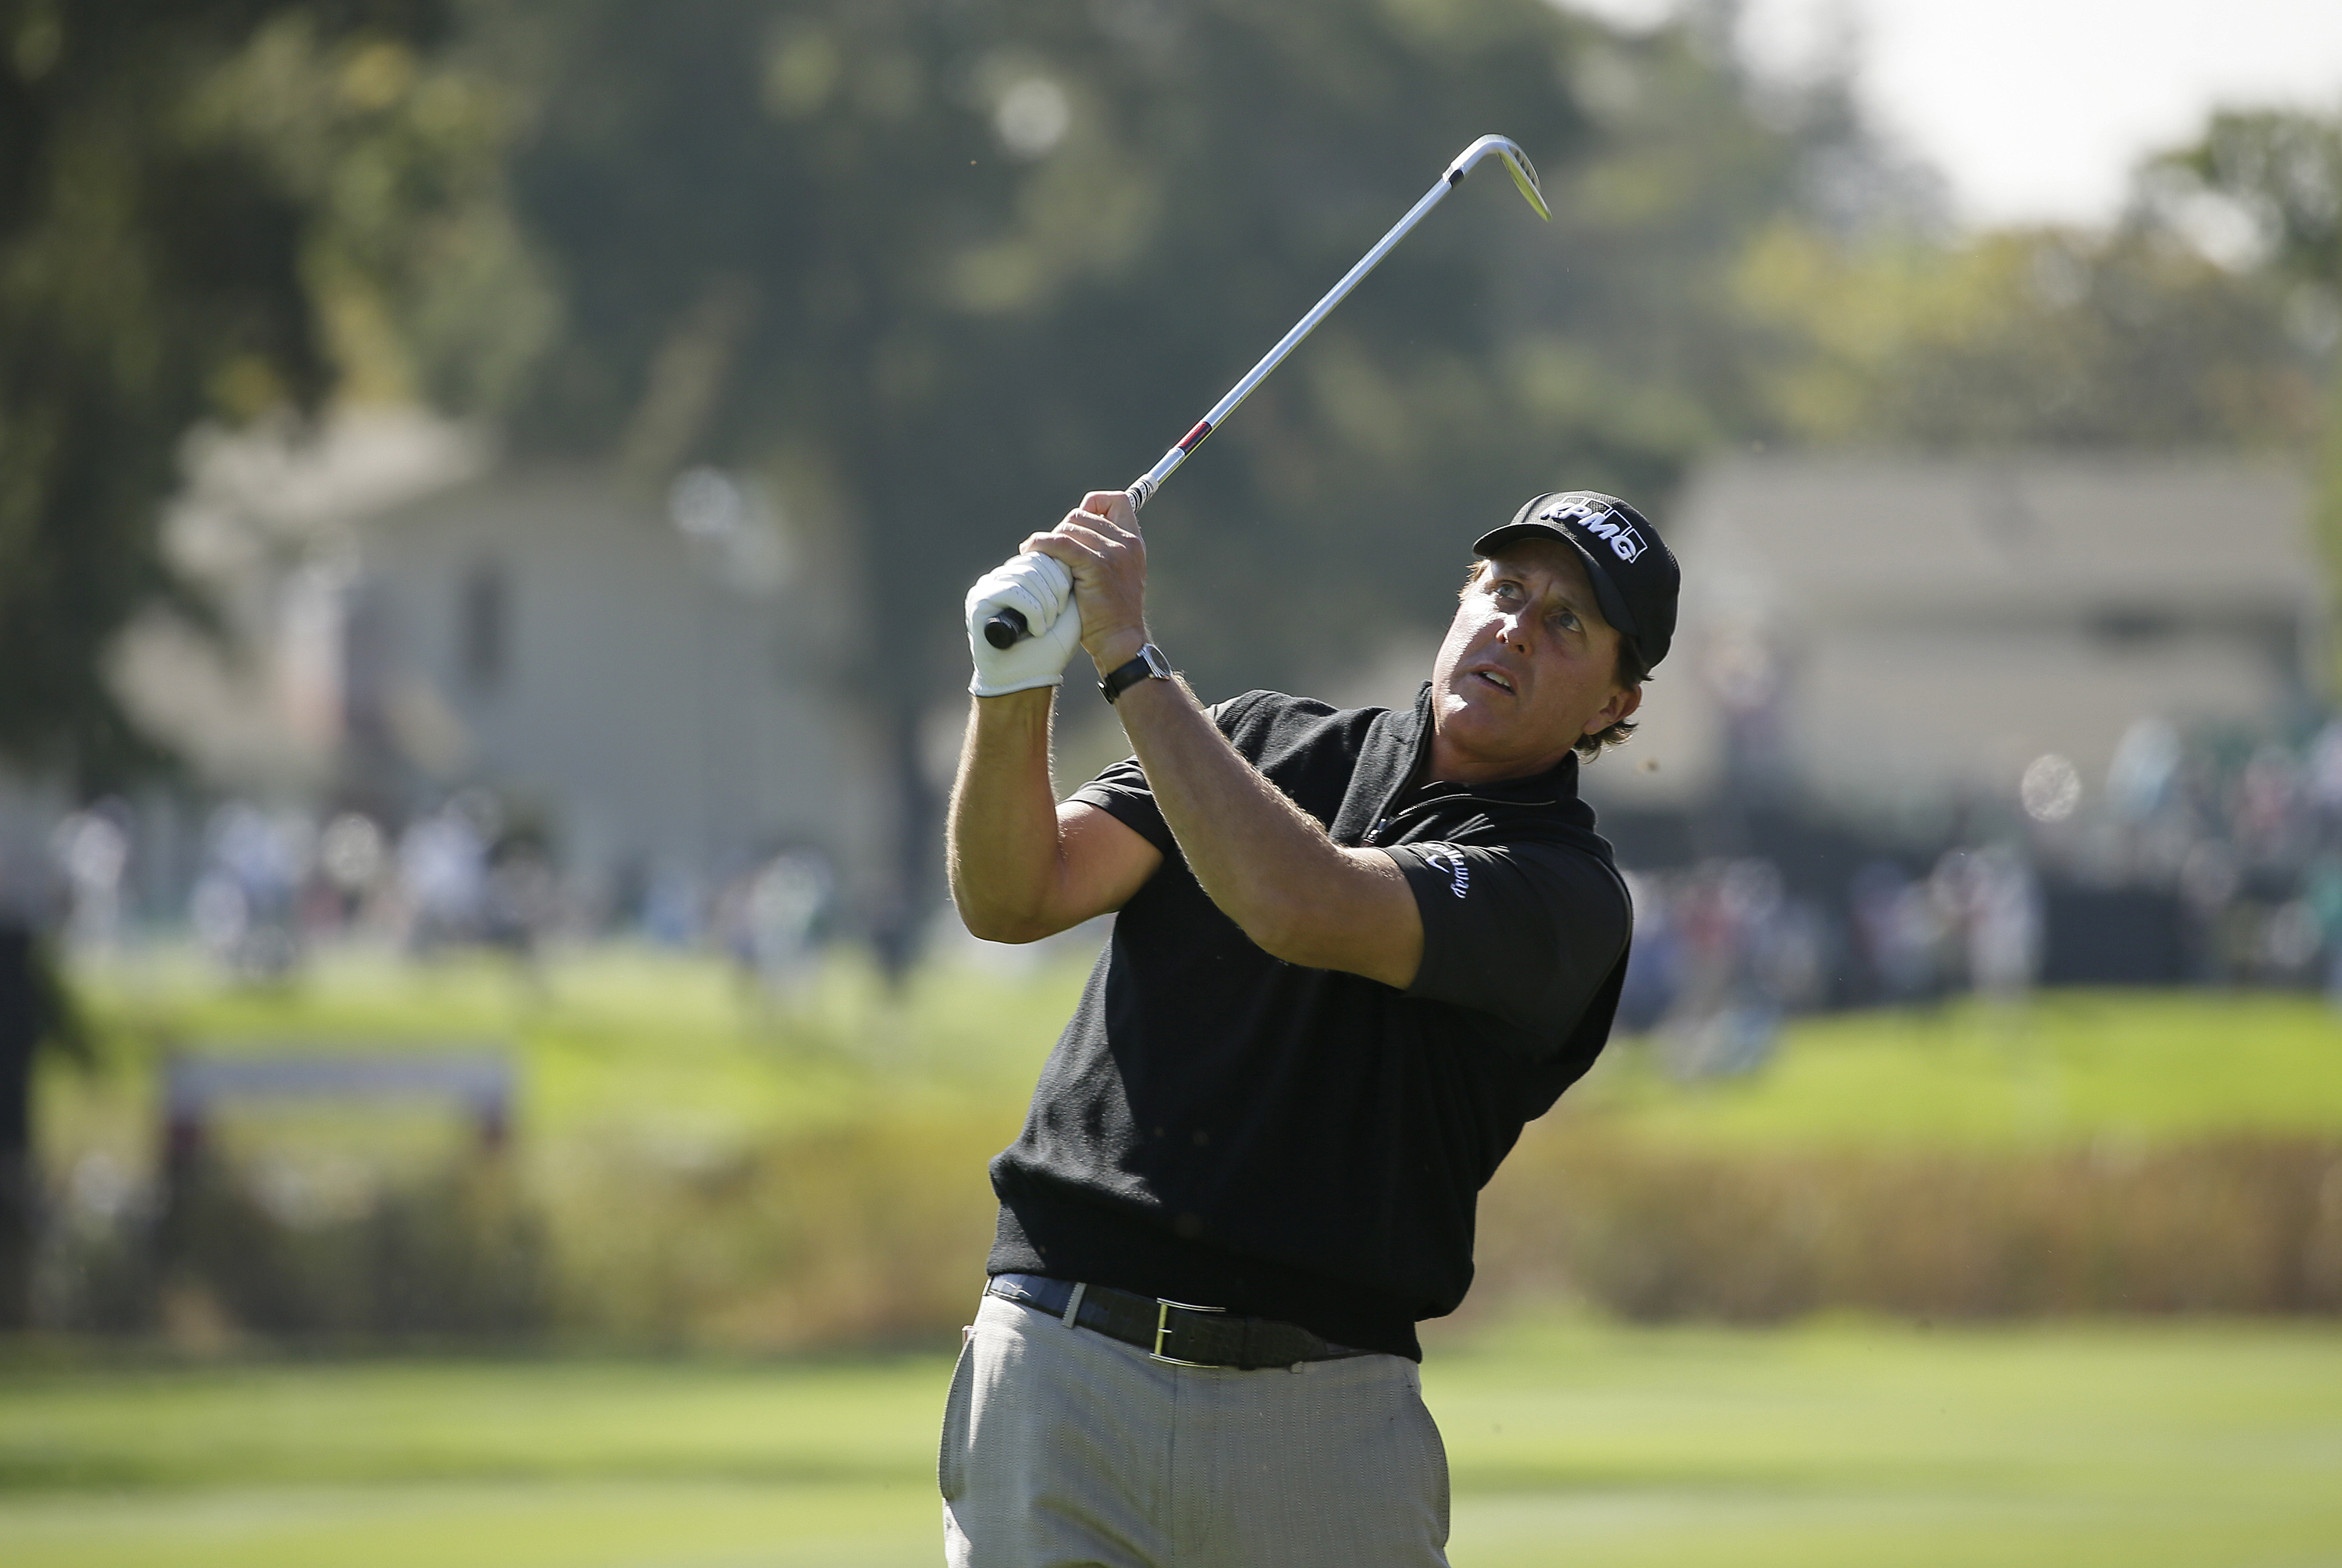 Phil Mickelson follows his approach shot at the Safeway Open.